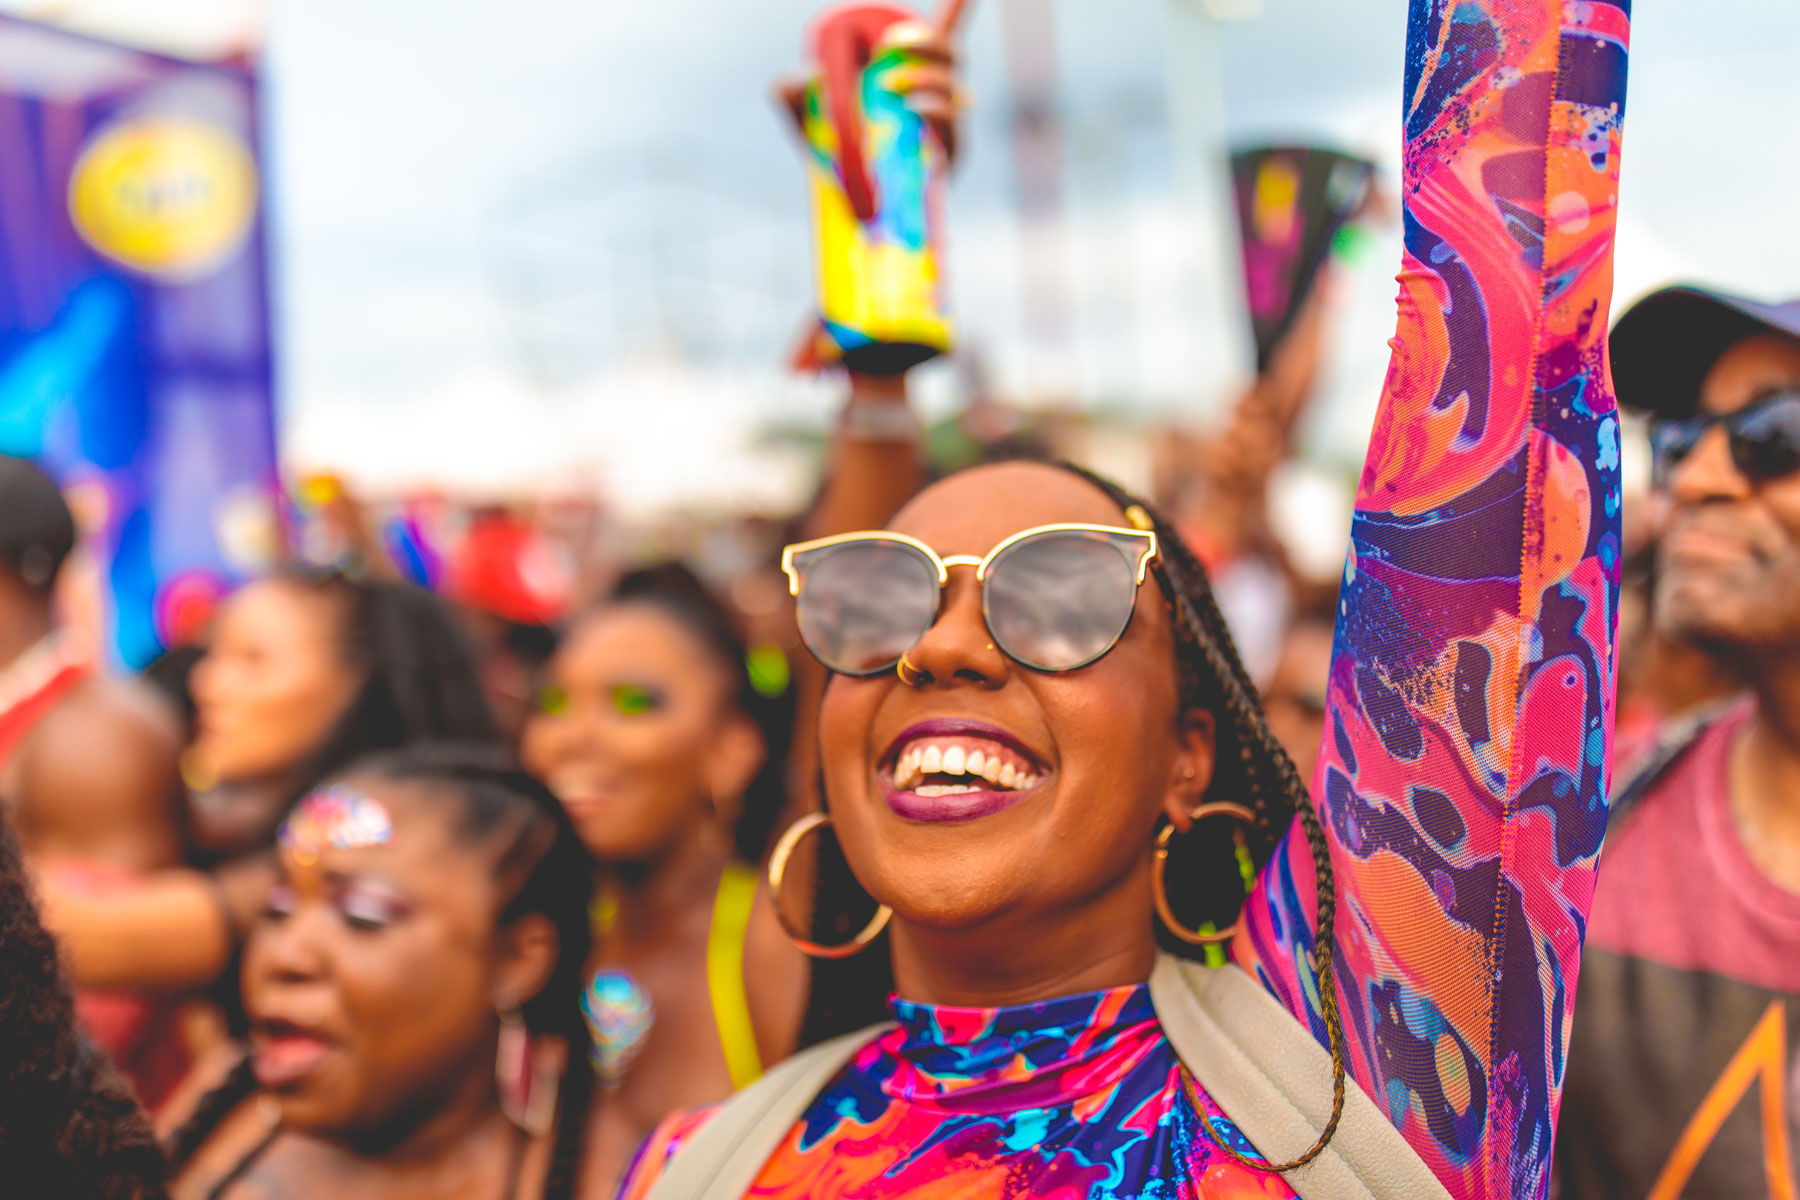 Women in crowd smiling at Carnival